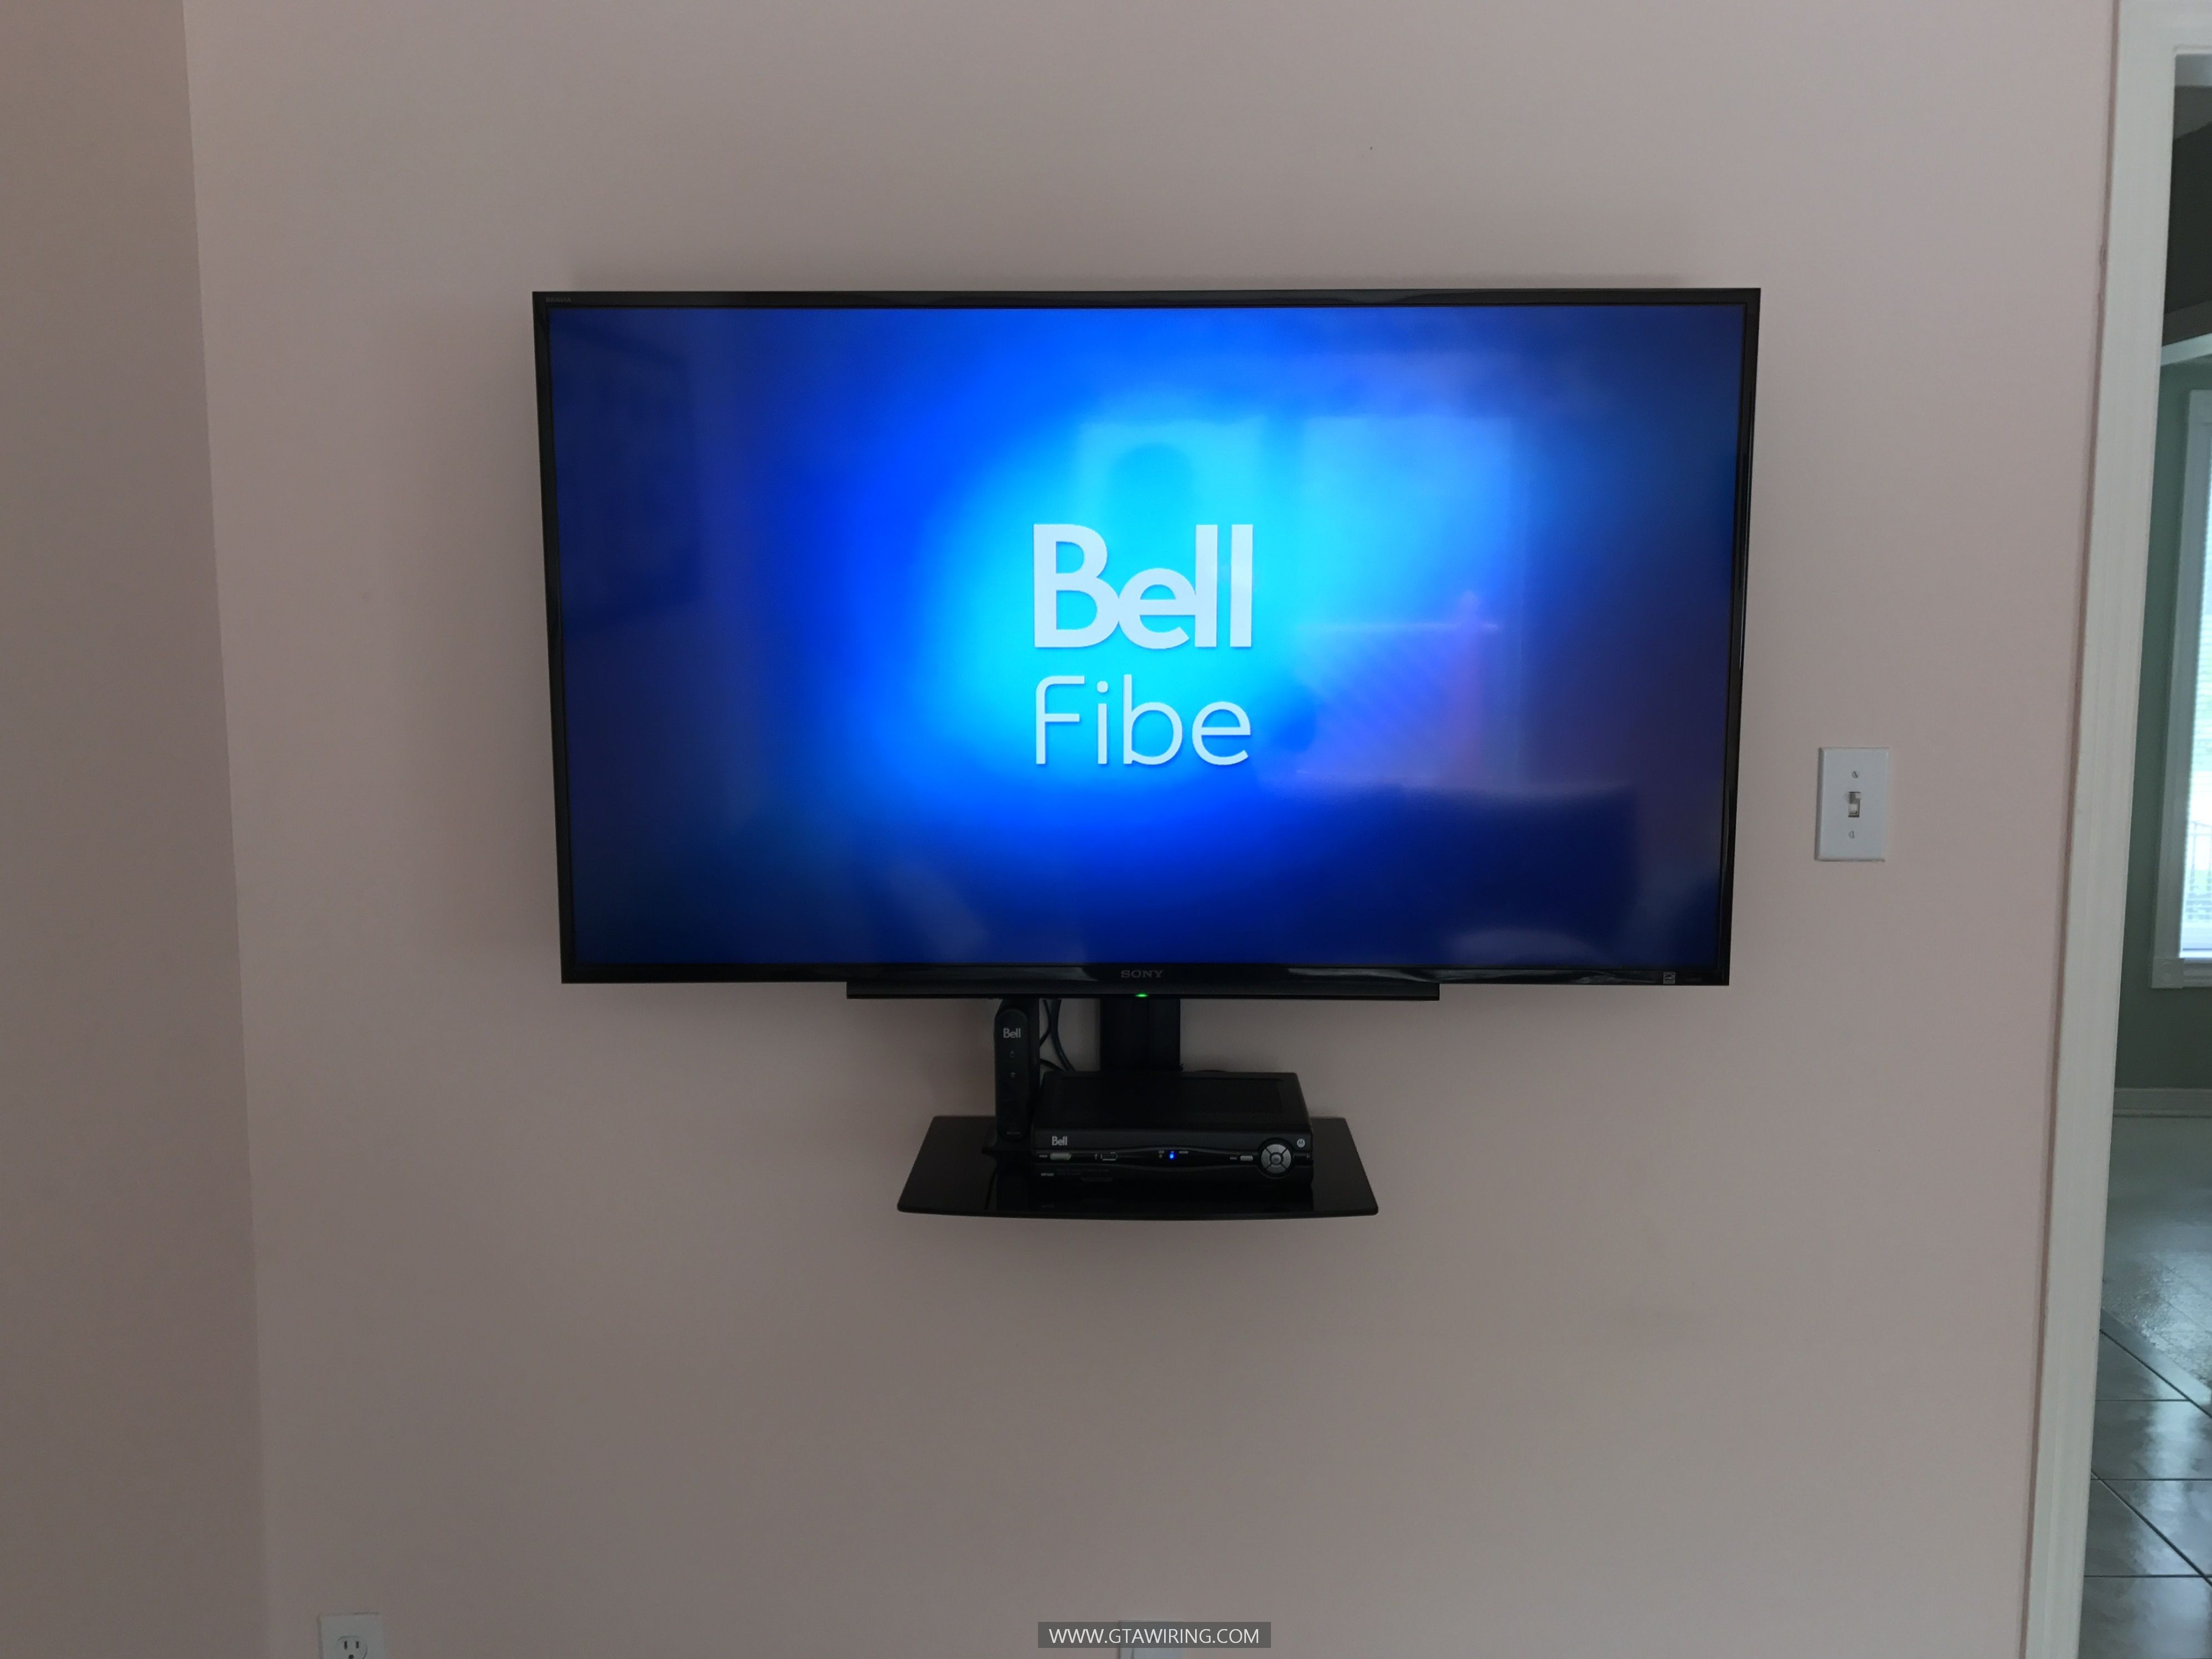 Tv Wall Mounting Single Media Shelf Installation Wires Concealment Newmarket Ontario More Info Www Gtawiring Com Tv Wall Wall Mounted Tv Tv Wall Mounts